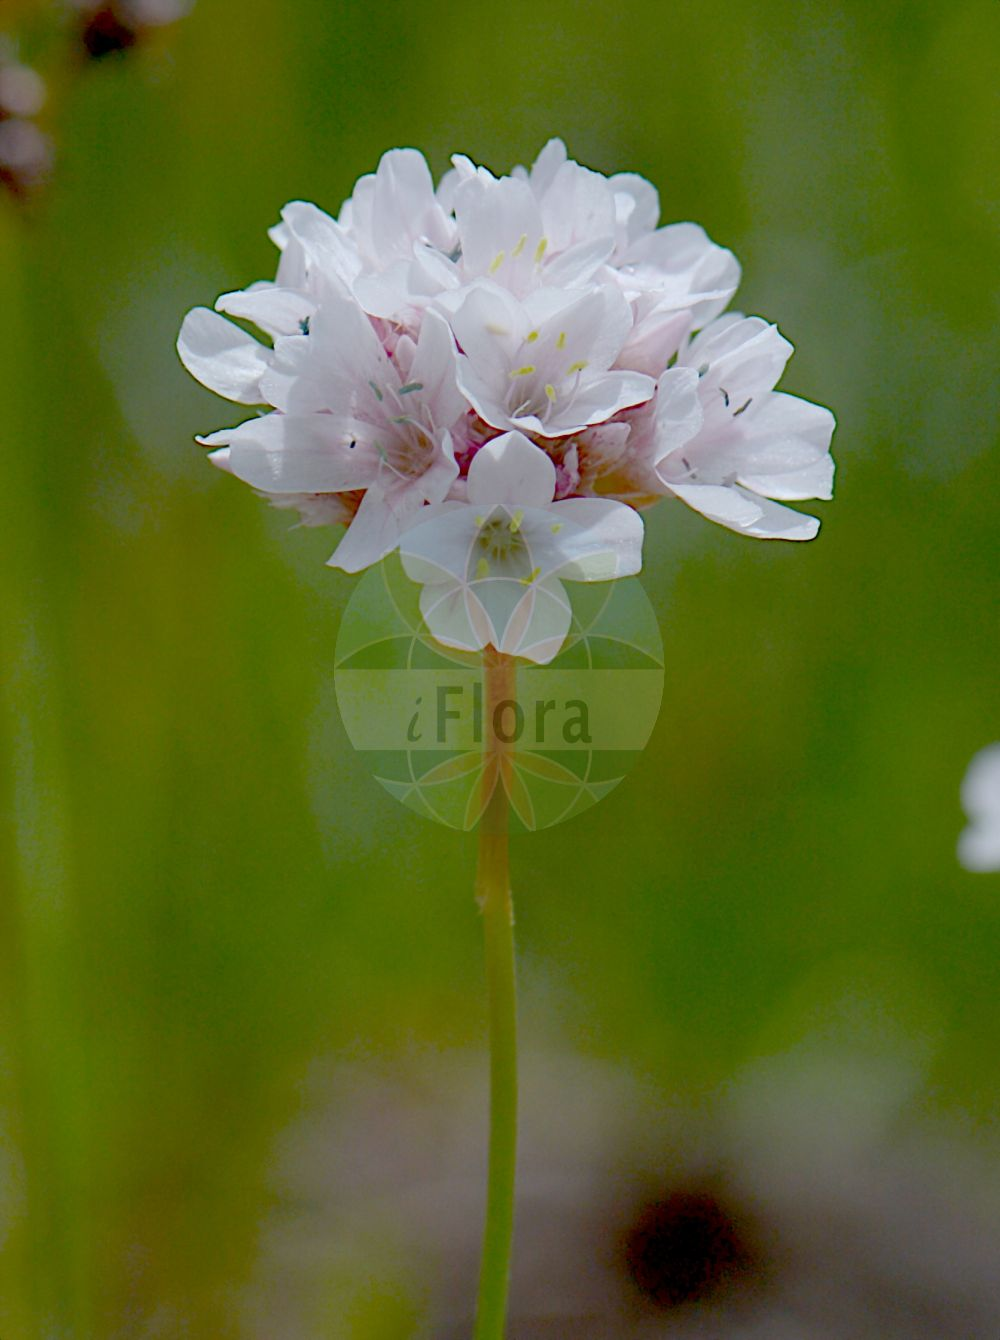 Foto von Armeria alpina subsp. alpina. Das Bild zeigt Bluete. Das Foto wurde in Monte Bondeone, Provincia Autonoma di Trento, Italien, Alpen aufgenommen. ---- Photo of Armeria alpina subsp. alpina.The image is showing flower.The picture was taken in Monte Bondeone, Provincia Autonoma di Trento, Italy, Alps. (Armeria alpina subsp. alpina,Armeria,Grasnelke,Thrift,Plumbaginaceae,Bleiwurzgewaechse,Leadwort family,Bluete,flower)